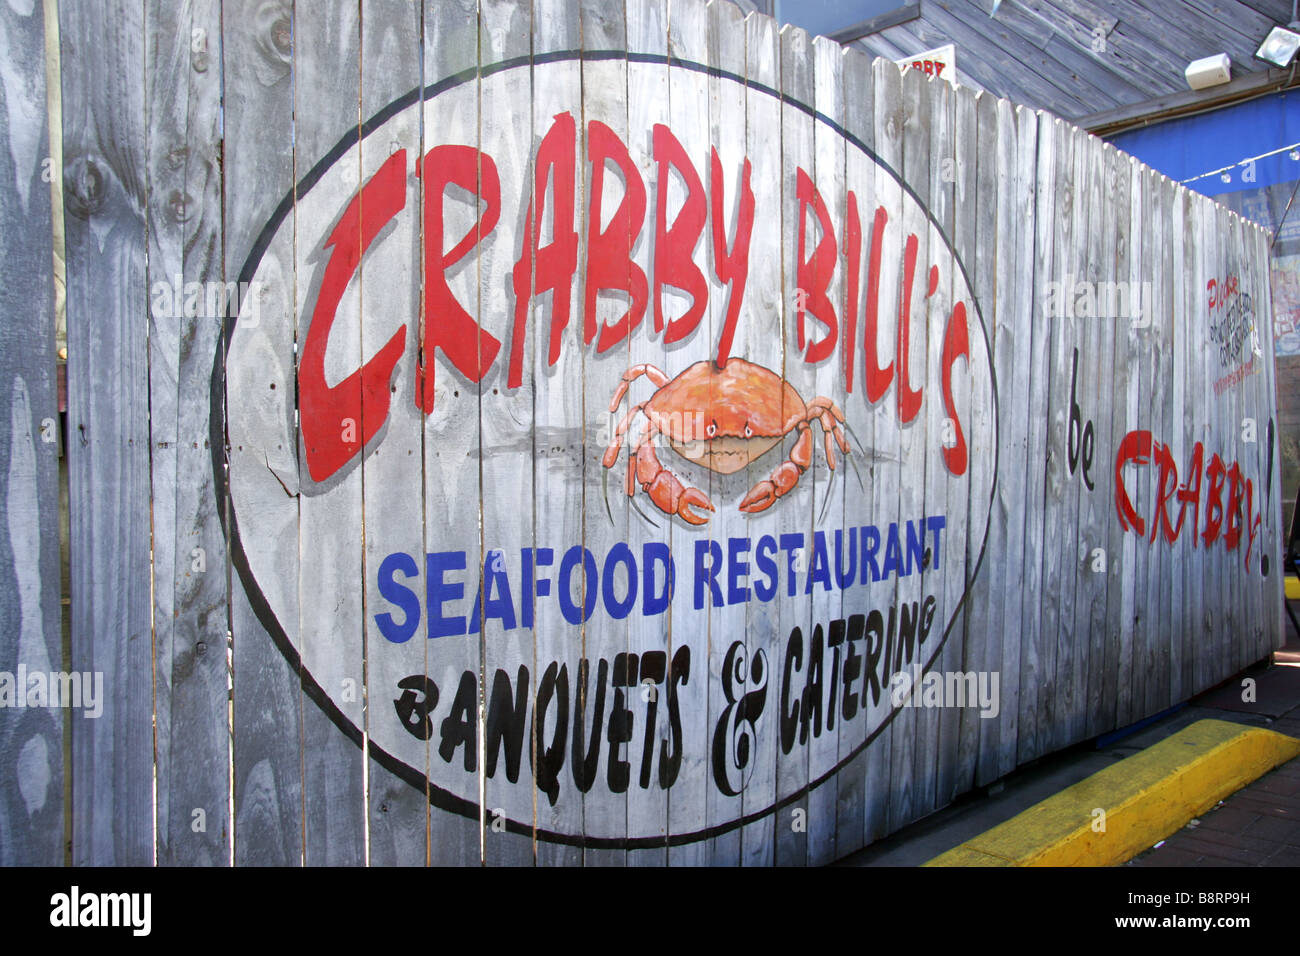 Painted Wood Fence Panel Sign For Crabby Bills Restaurant In